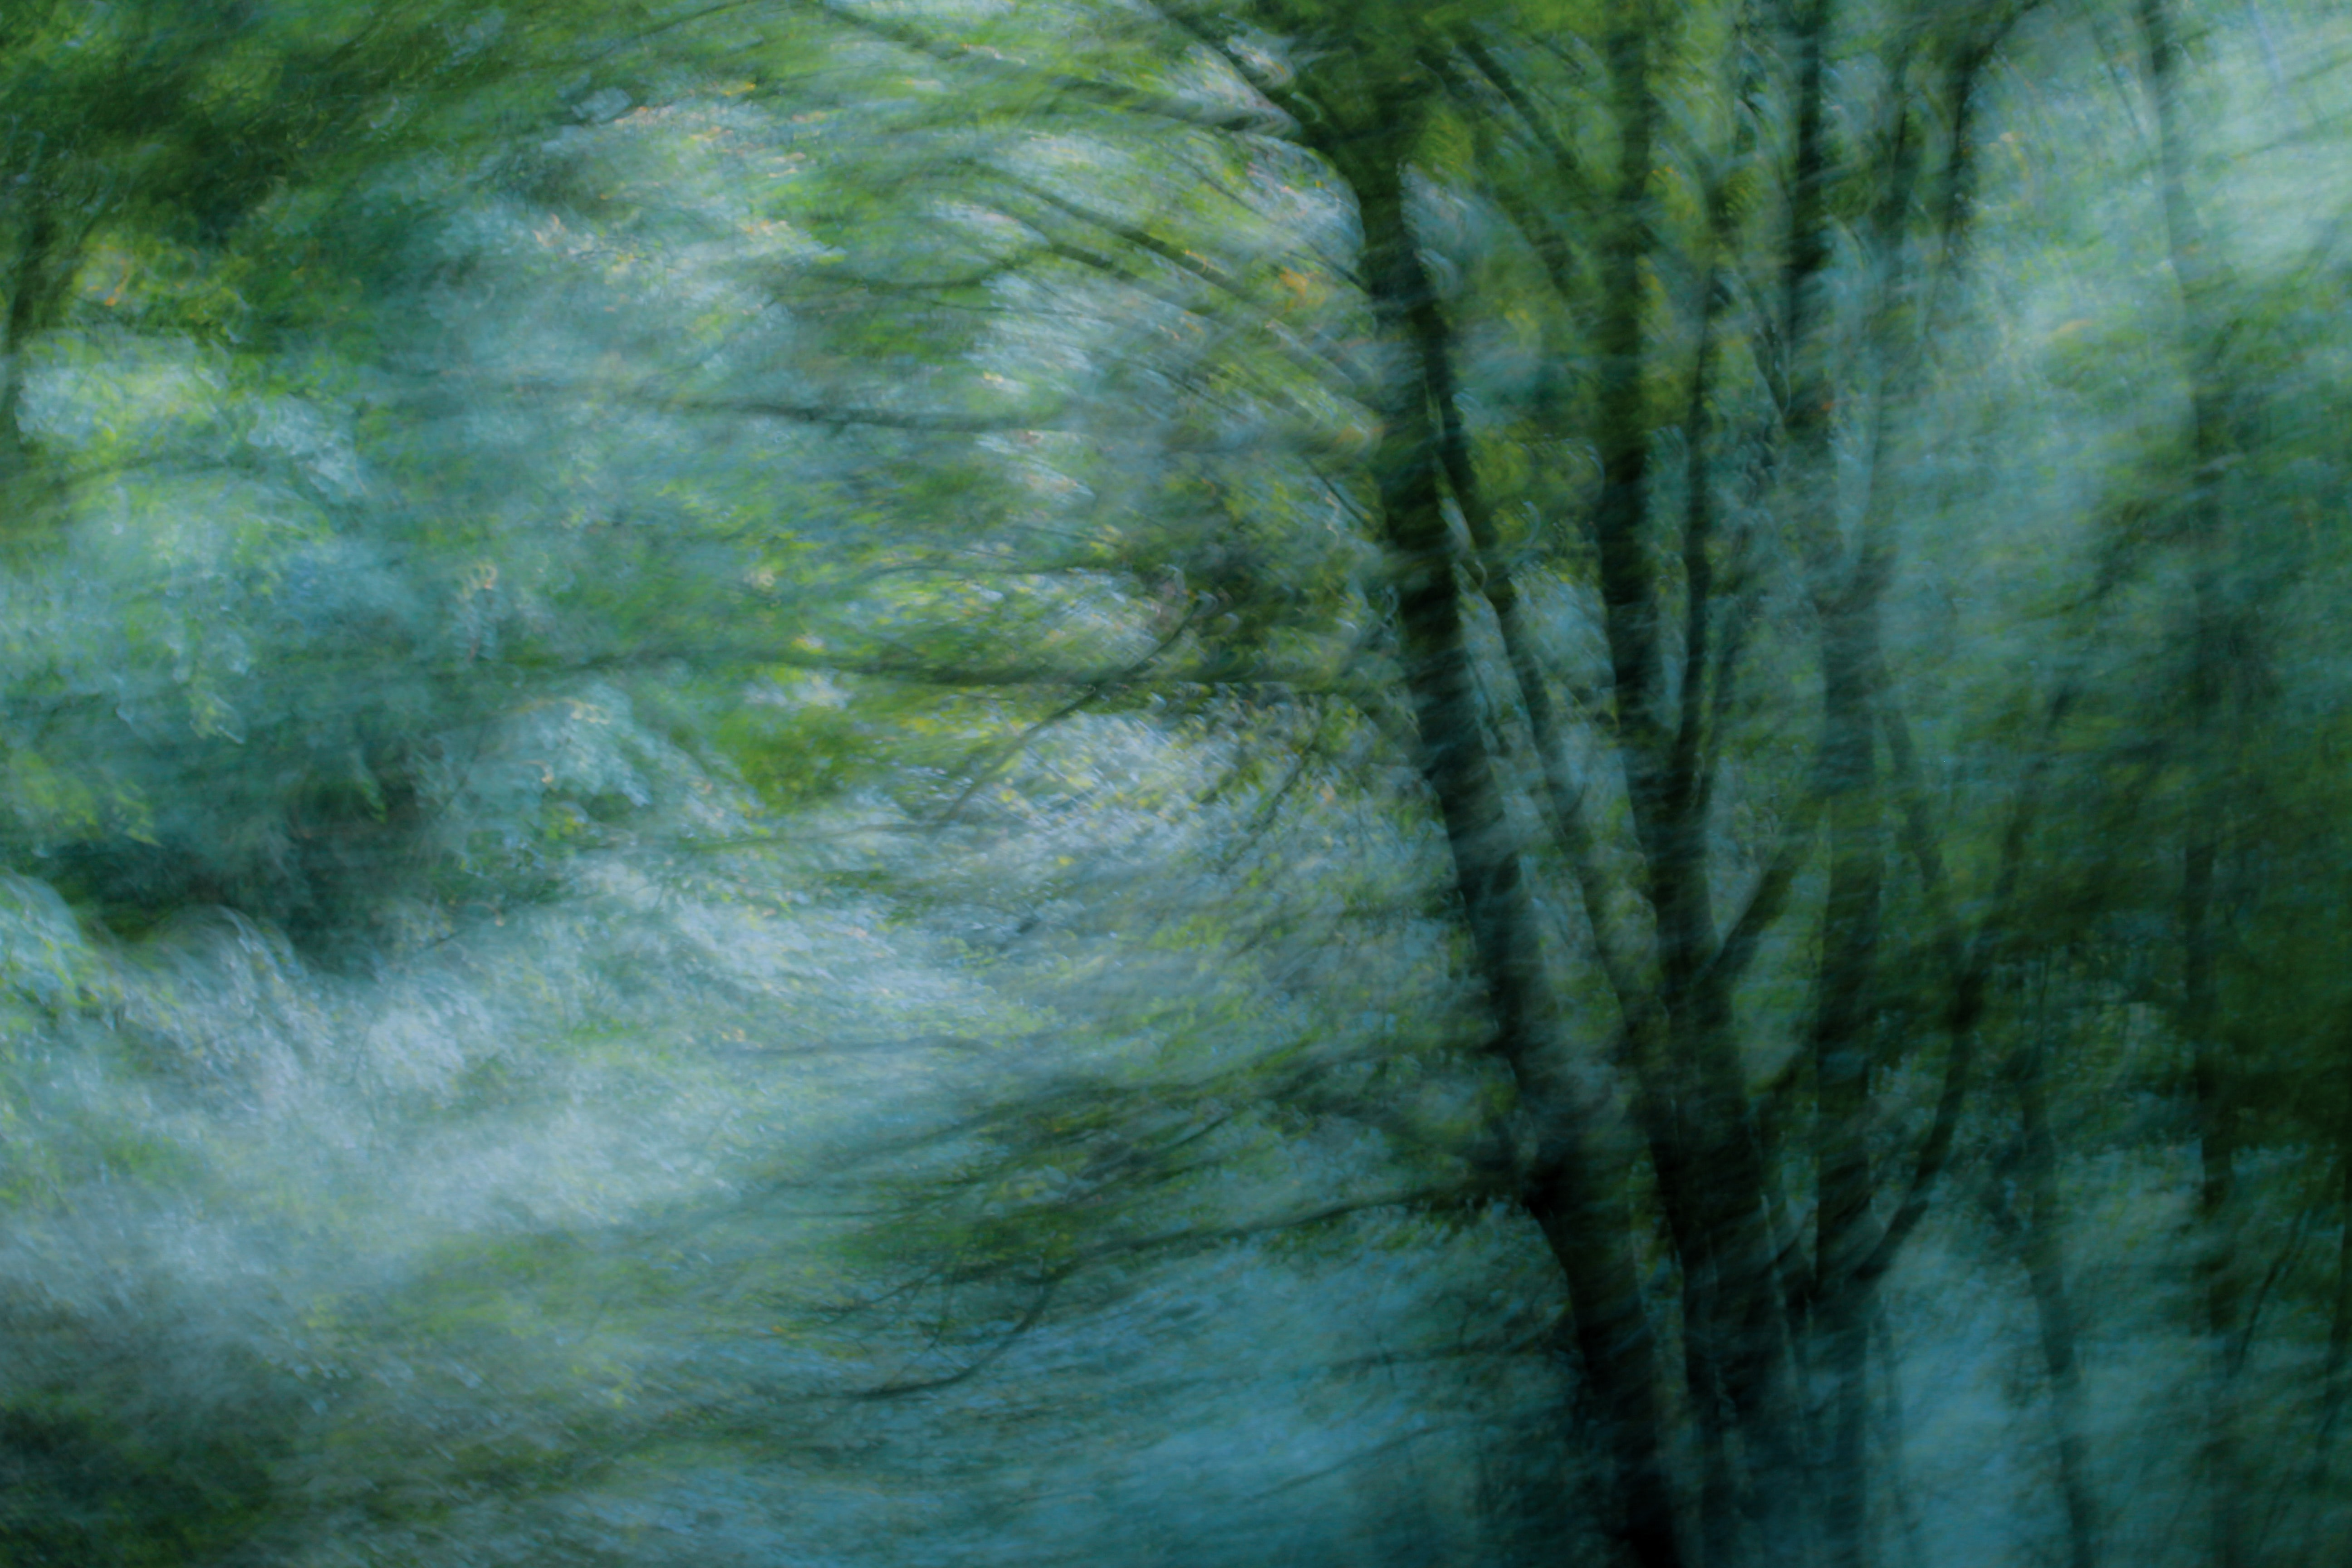 A blurred photo of a leafy tree against a blue sky, as if a breeze were blowing through the entire photo.